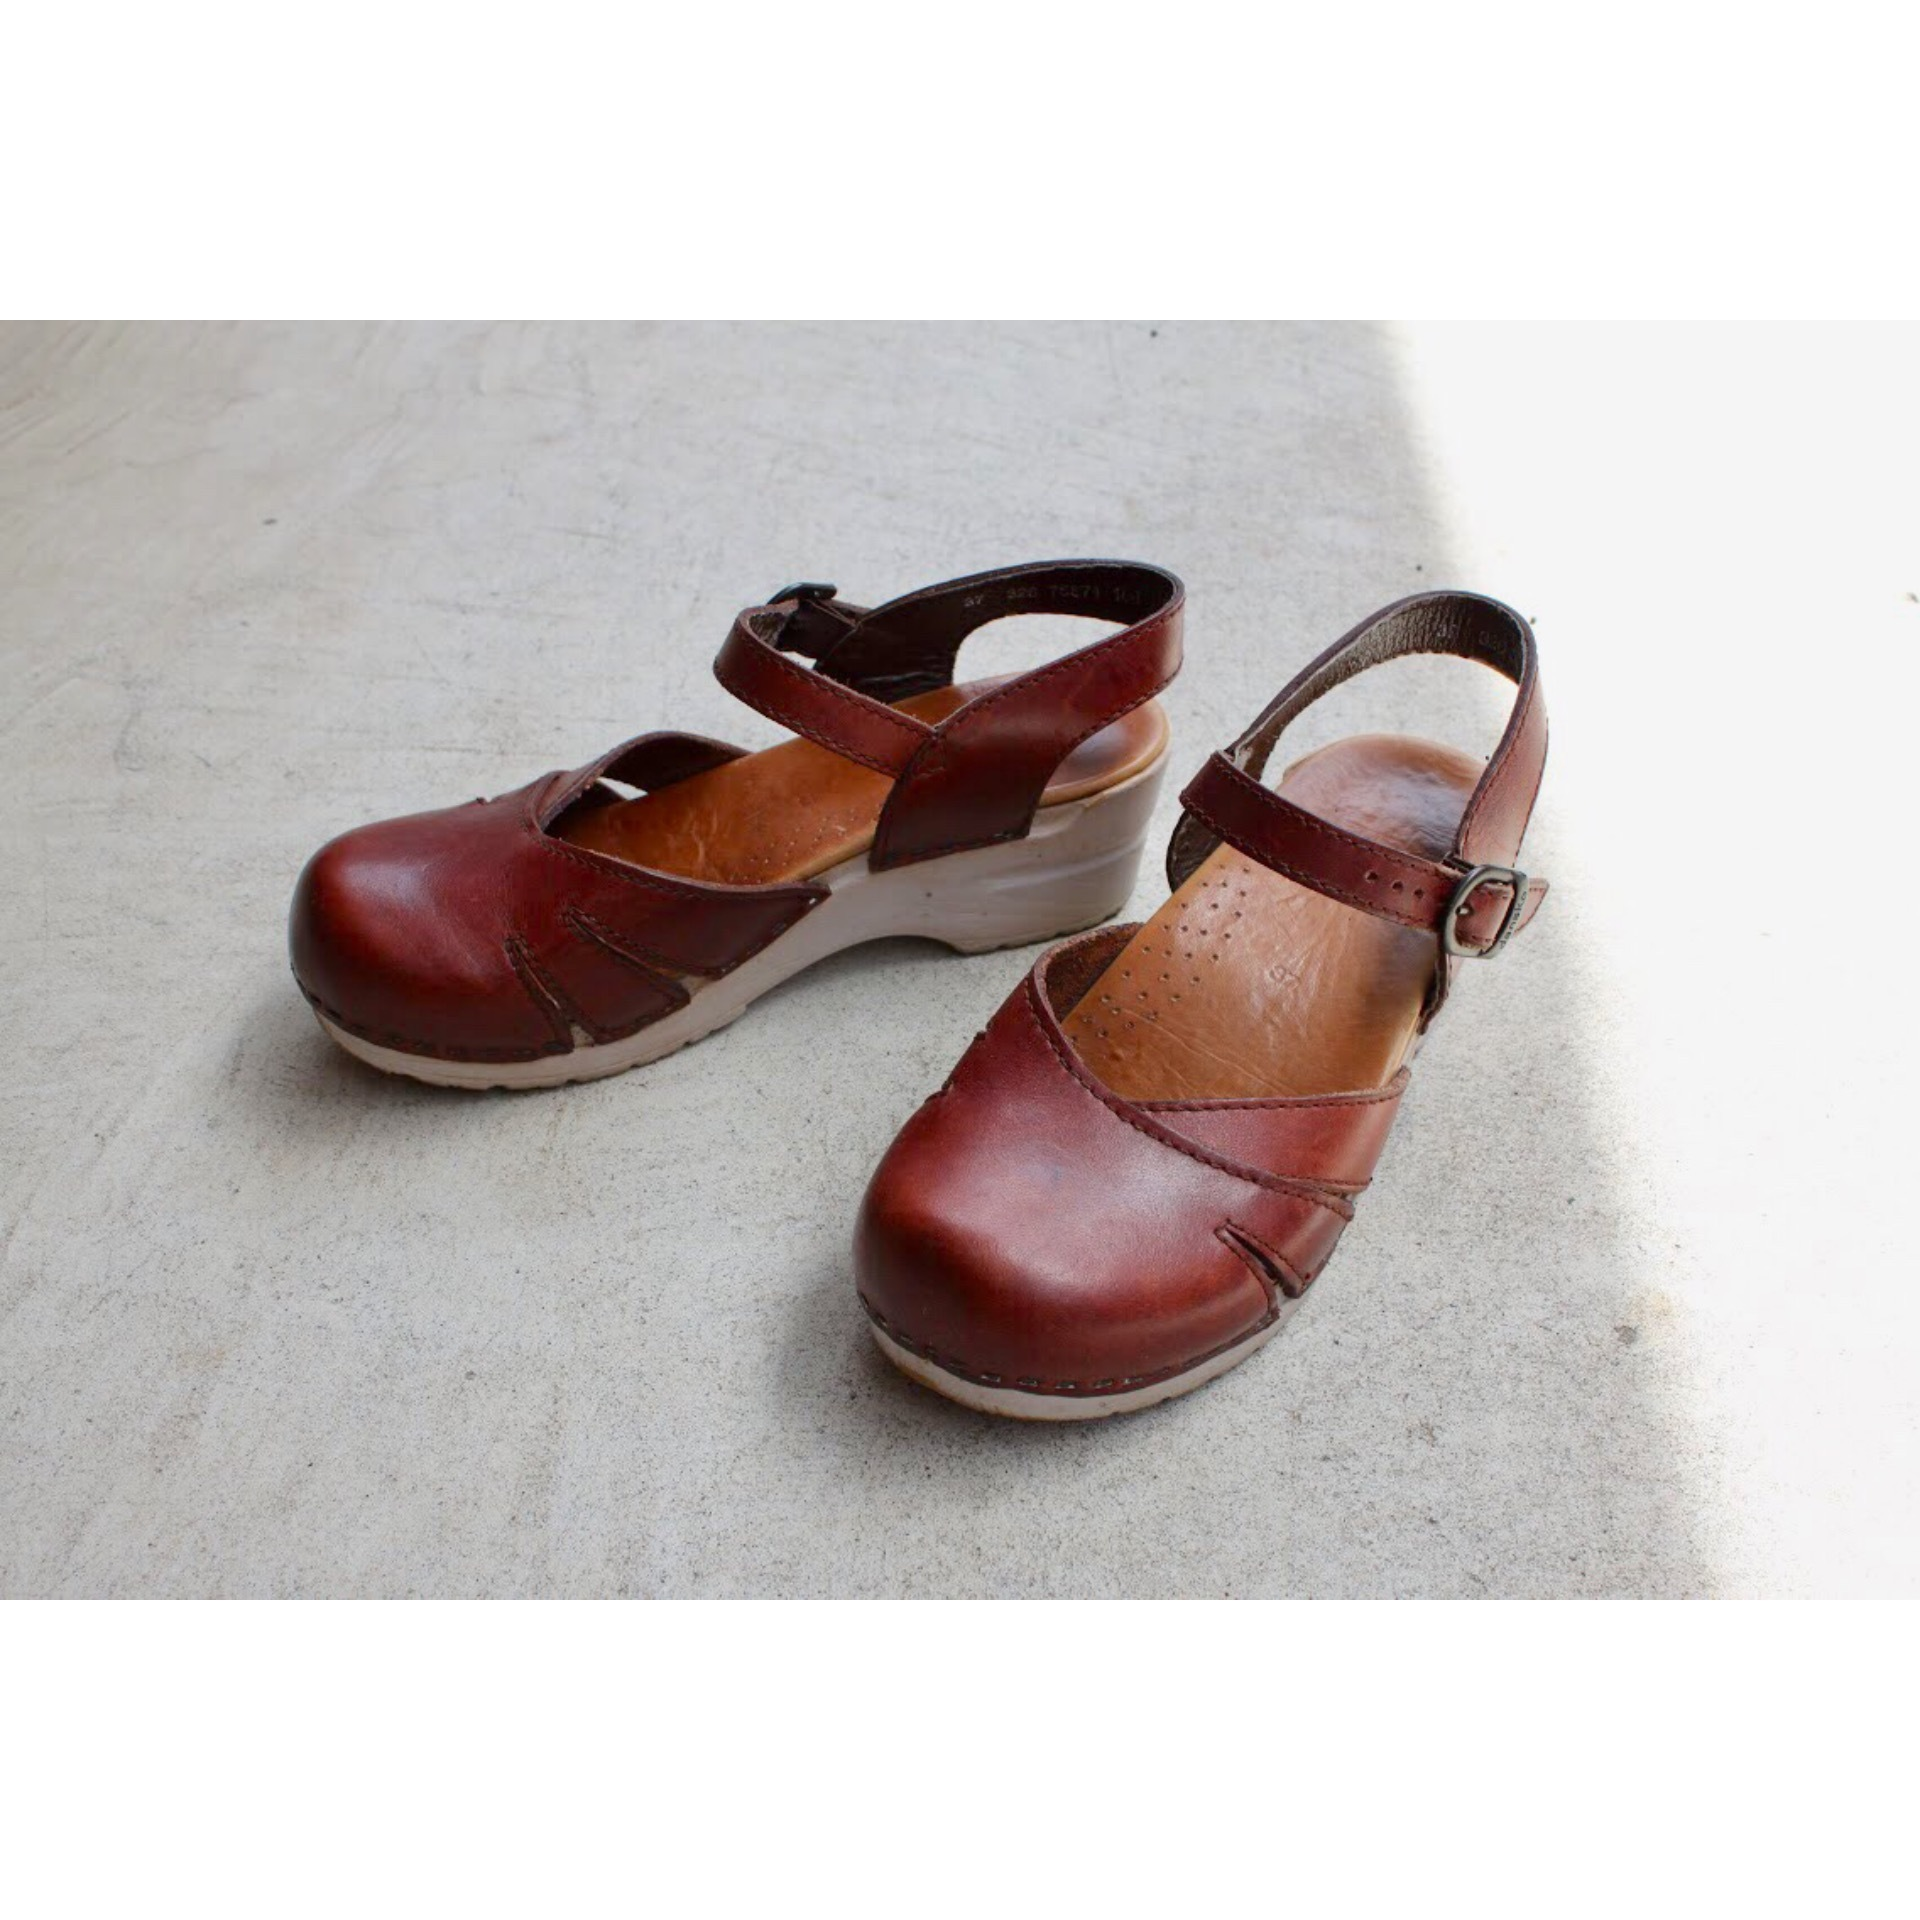 Vintage strap leather shoes by DANSKO